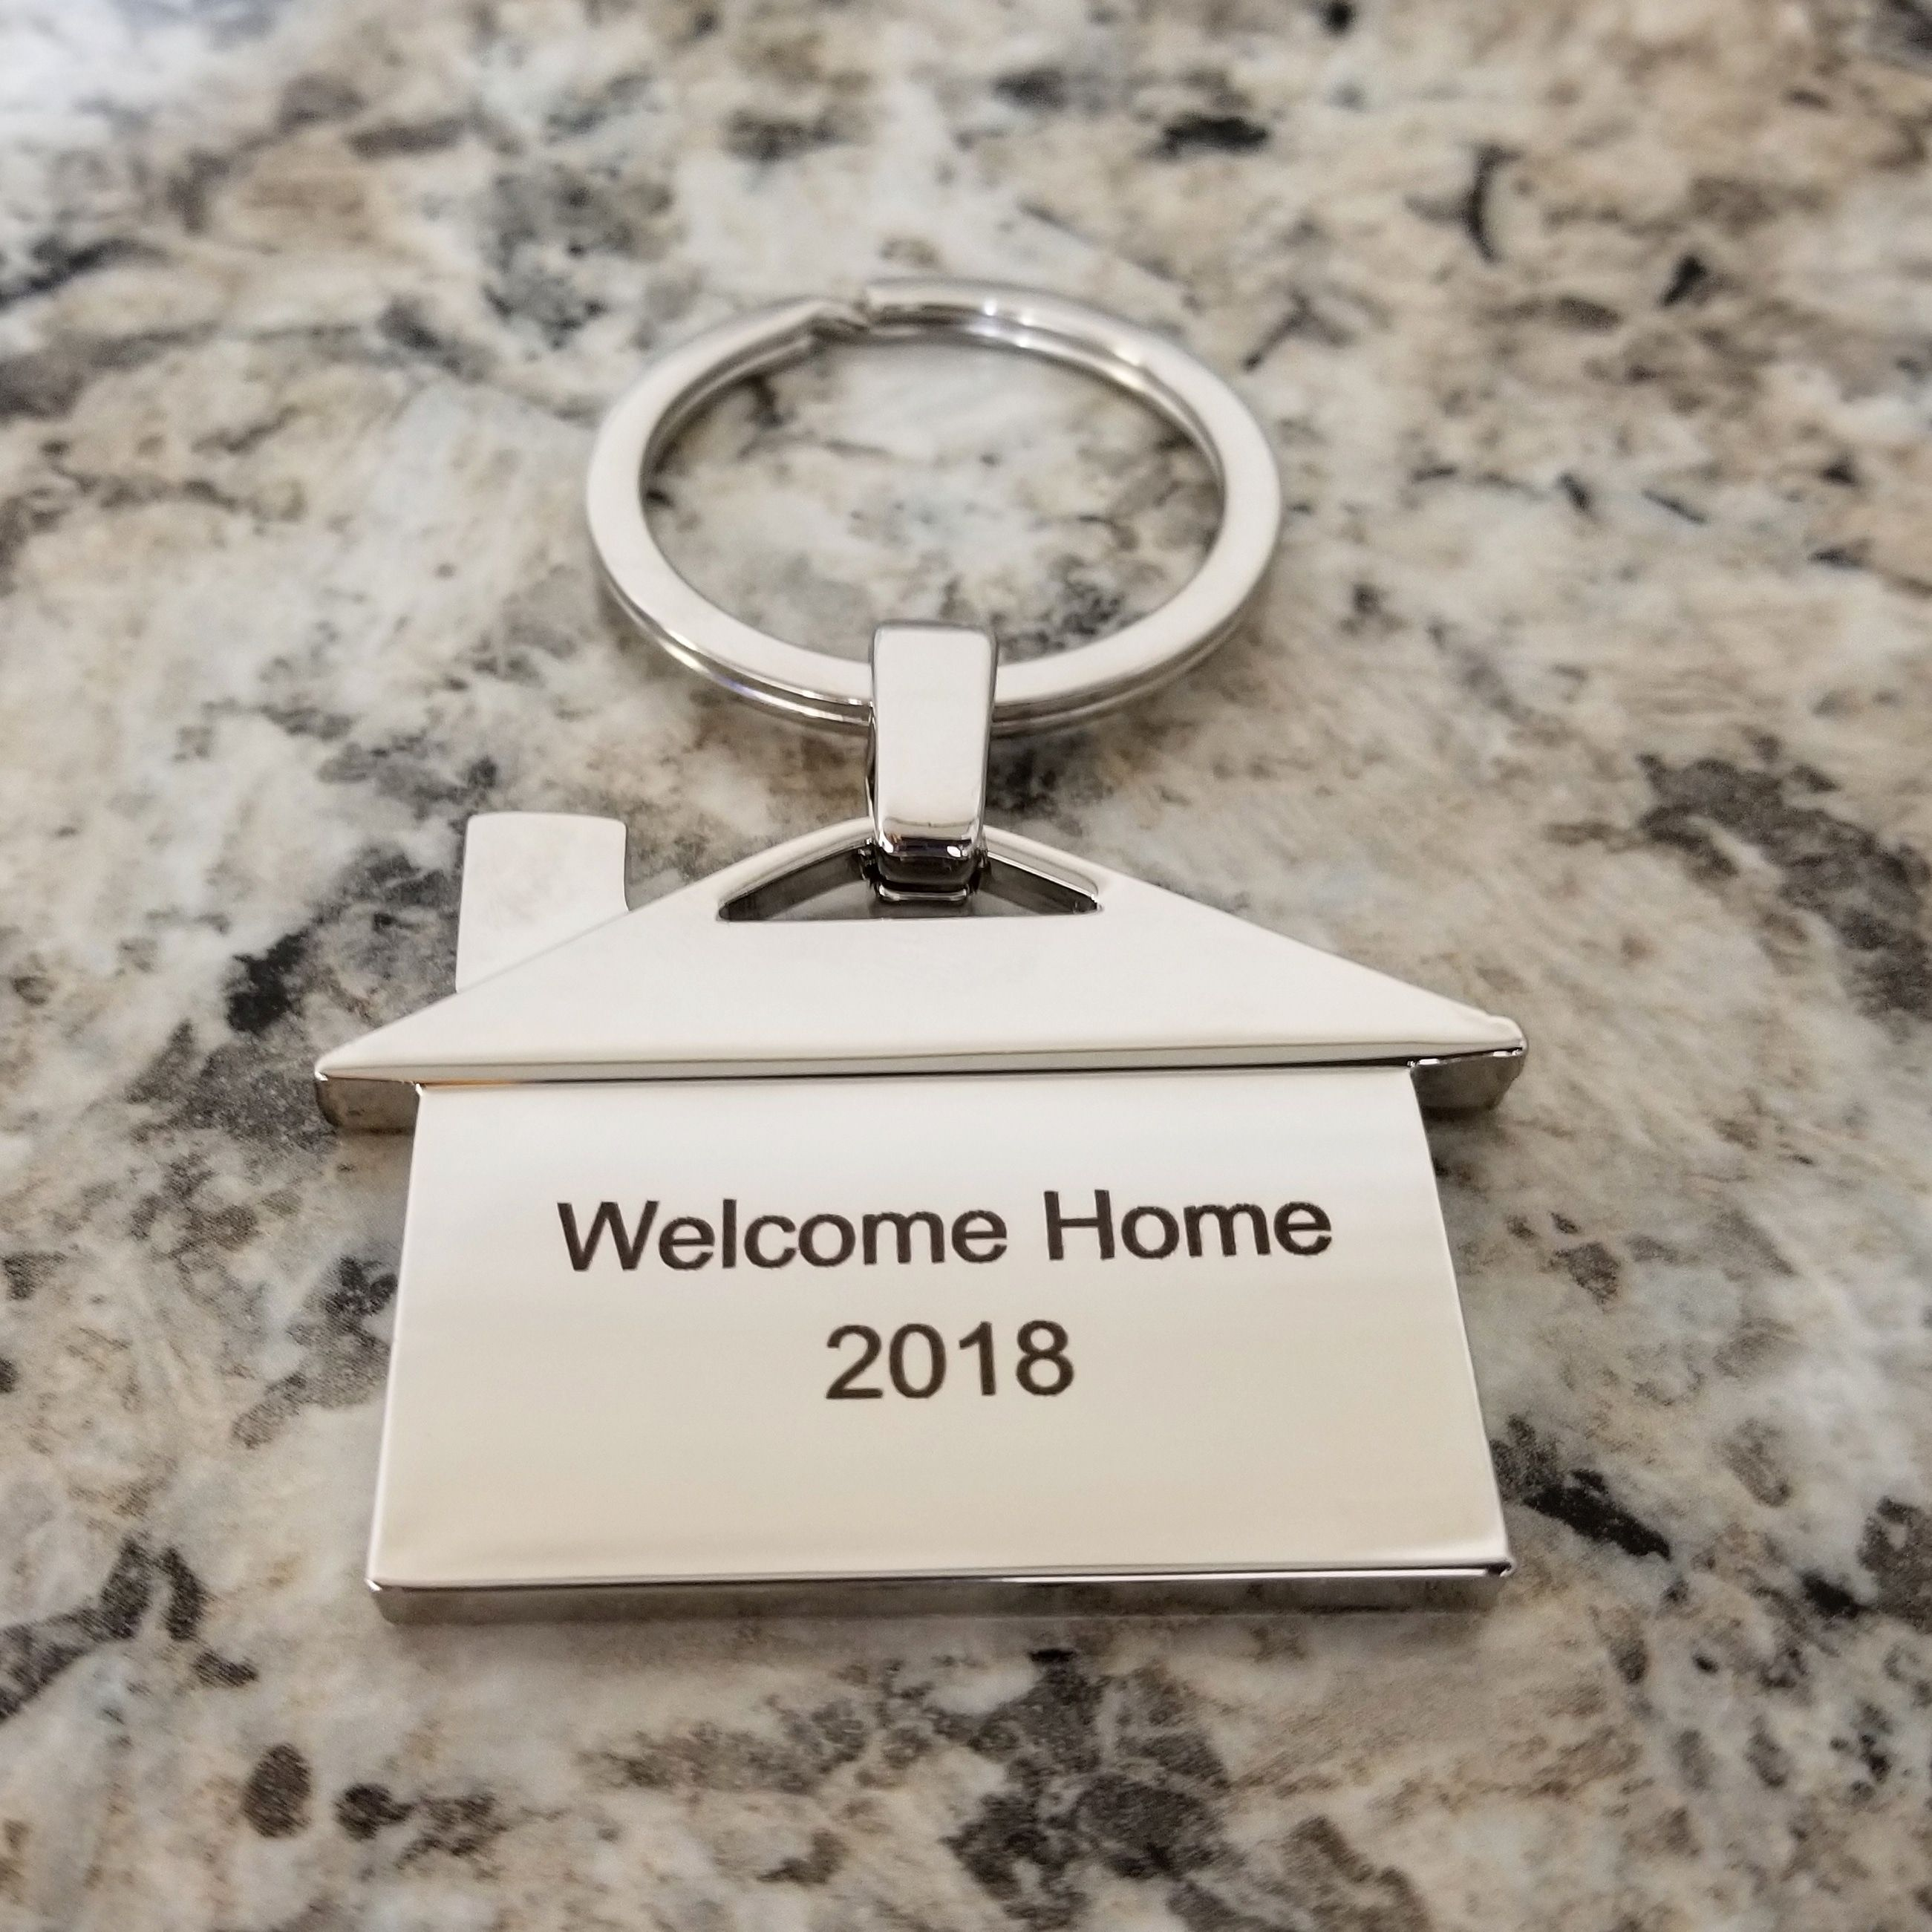 WELCOME HOME! Custom engraved keychains for meaningful Real